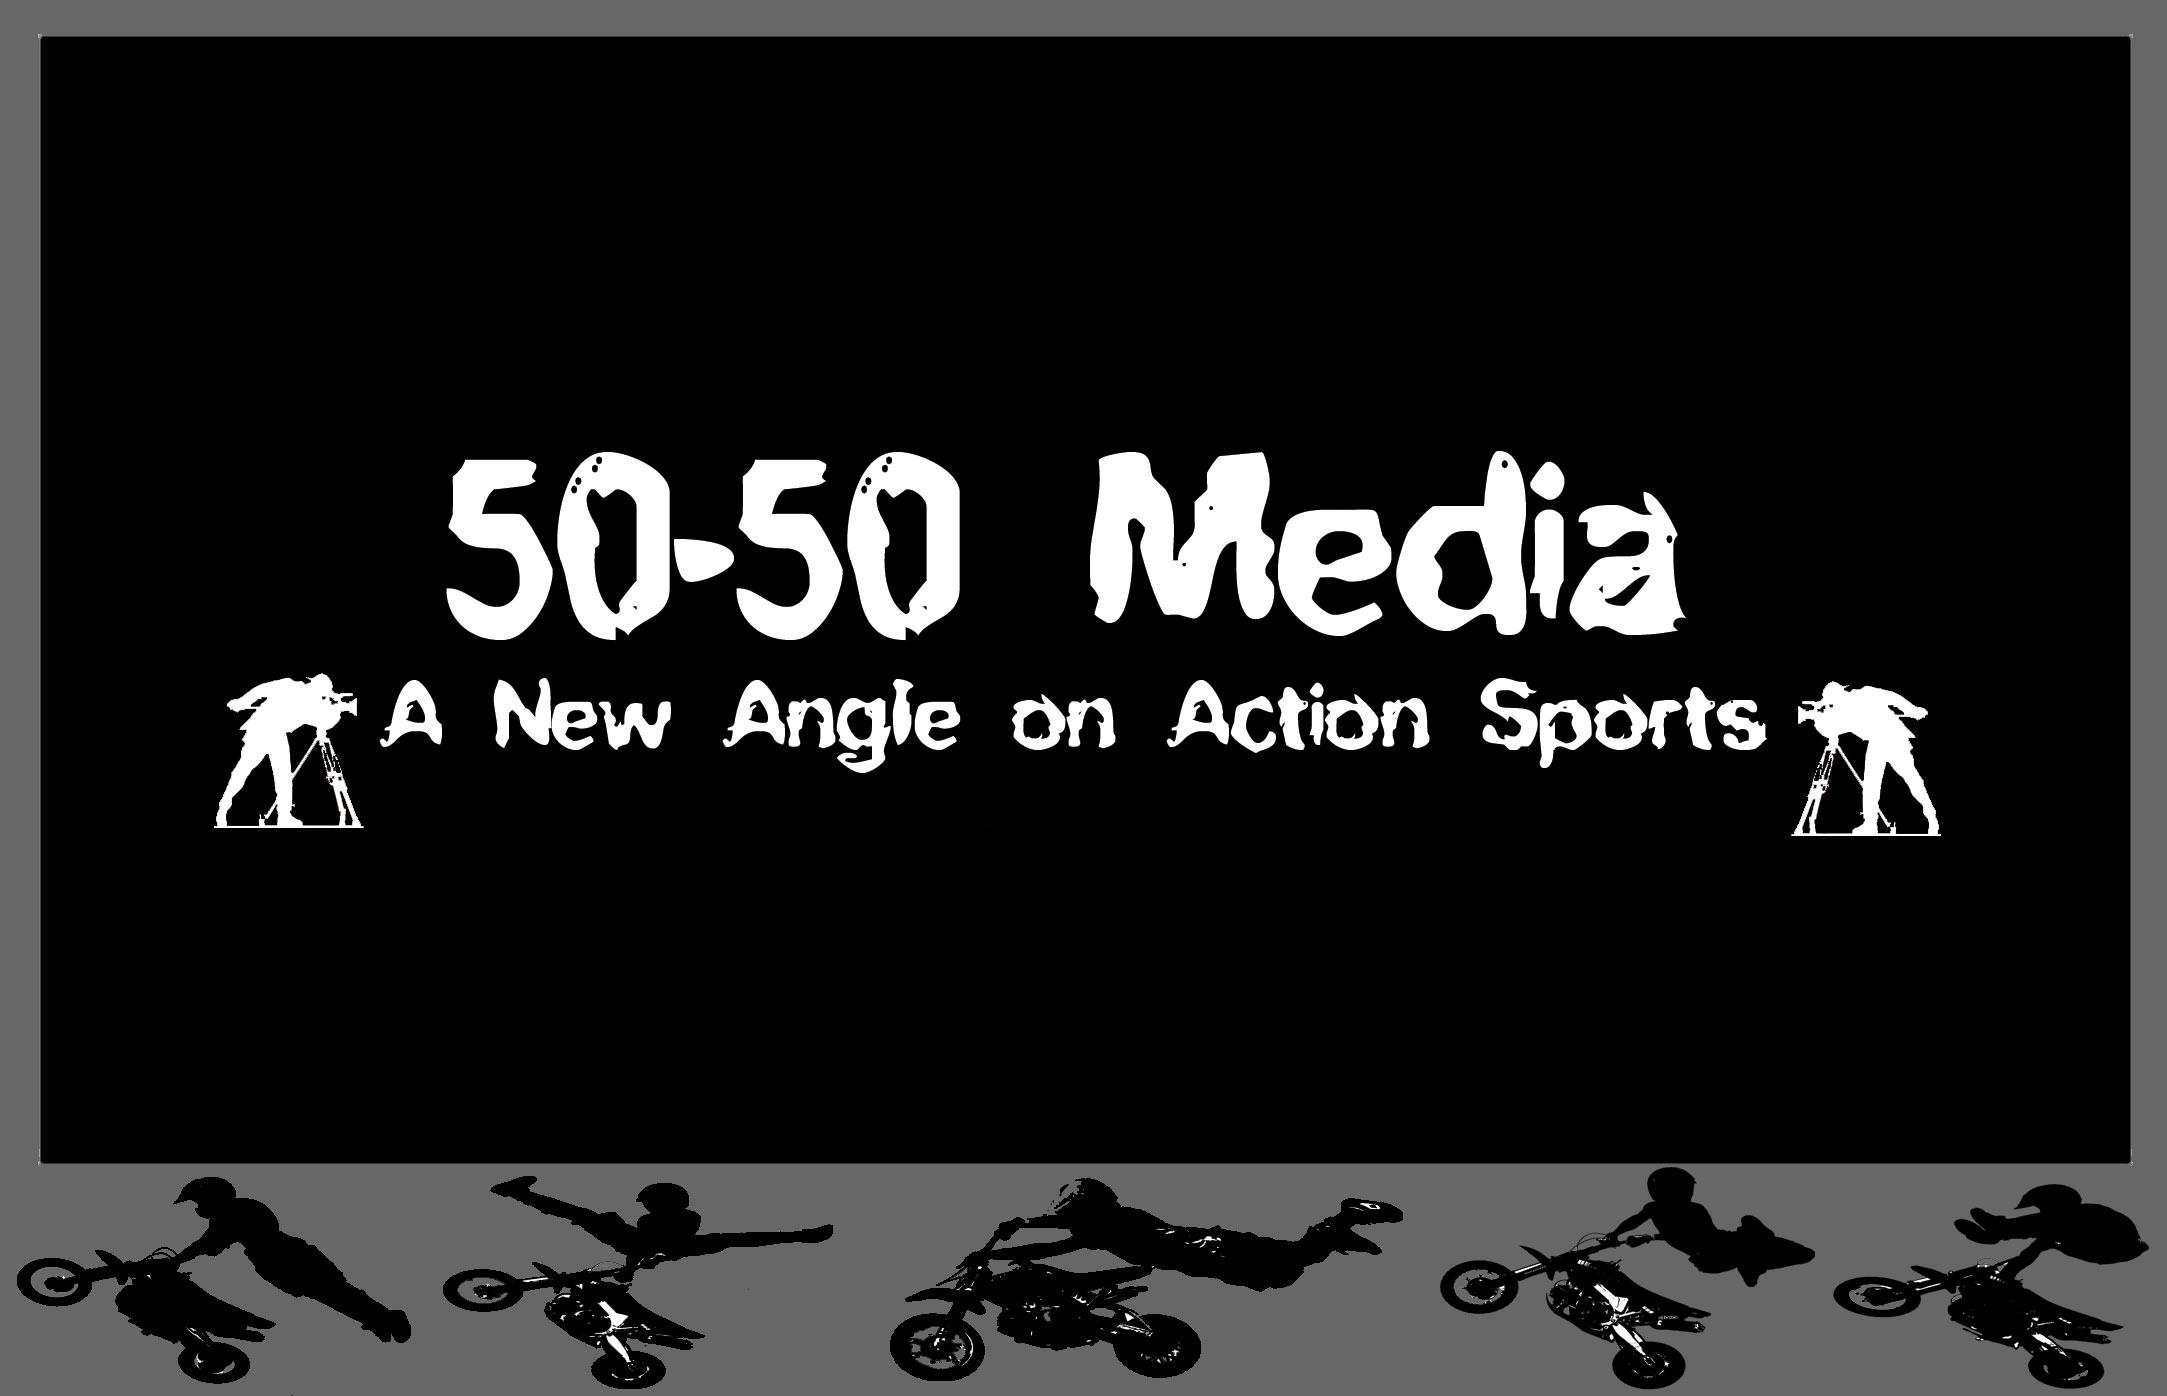 50-50-Media A New Angle on Action Sports